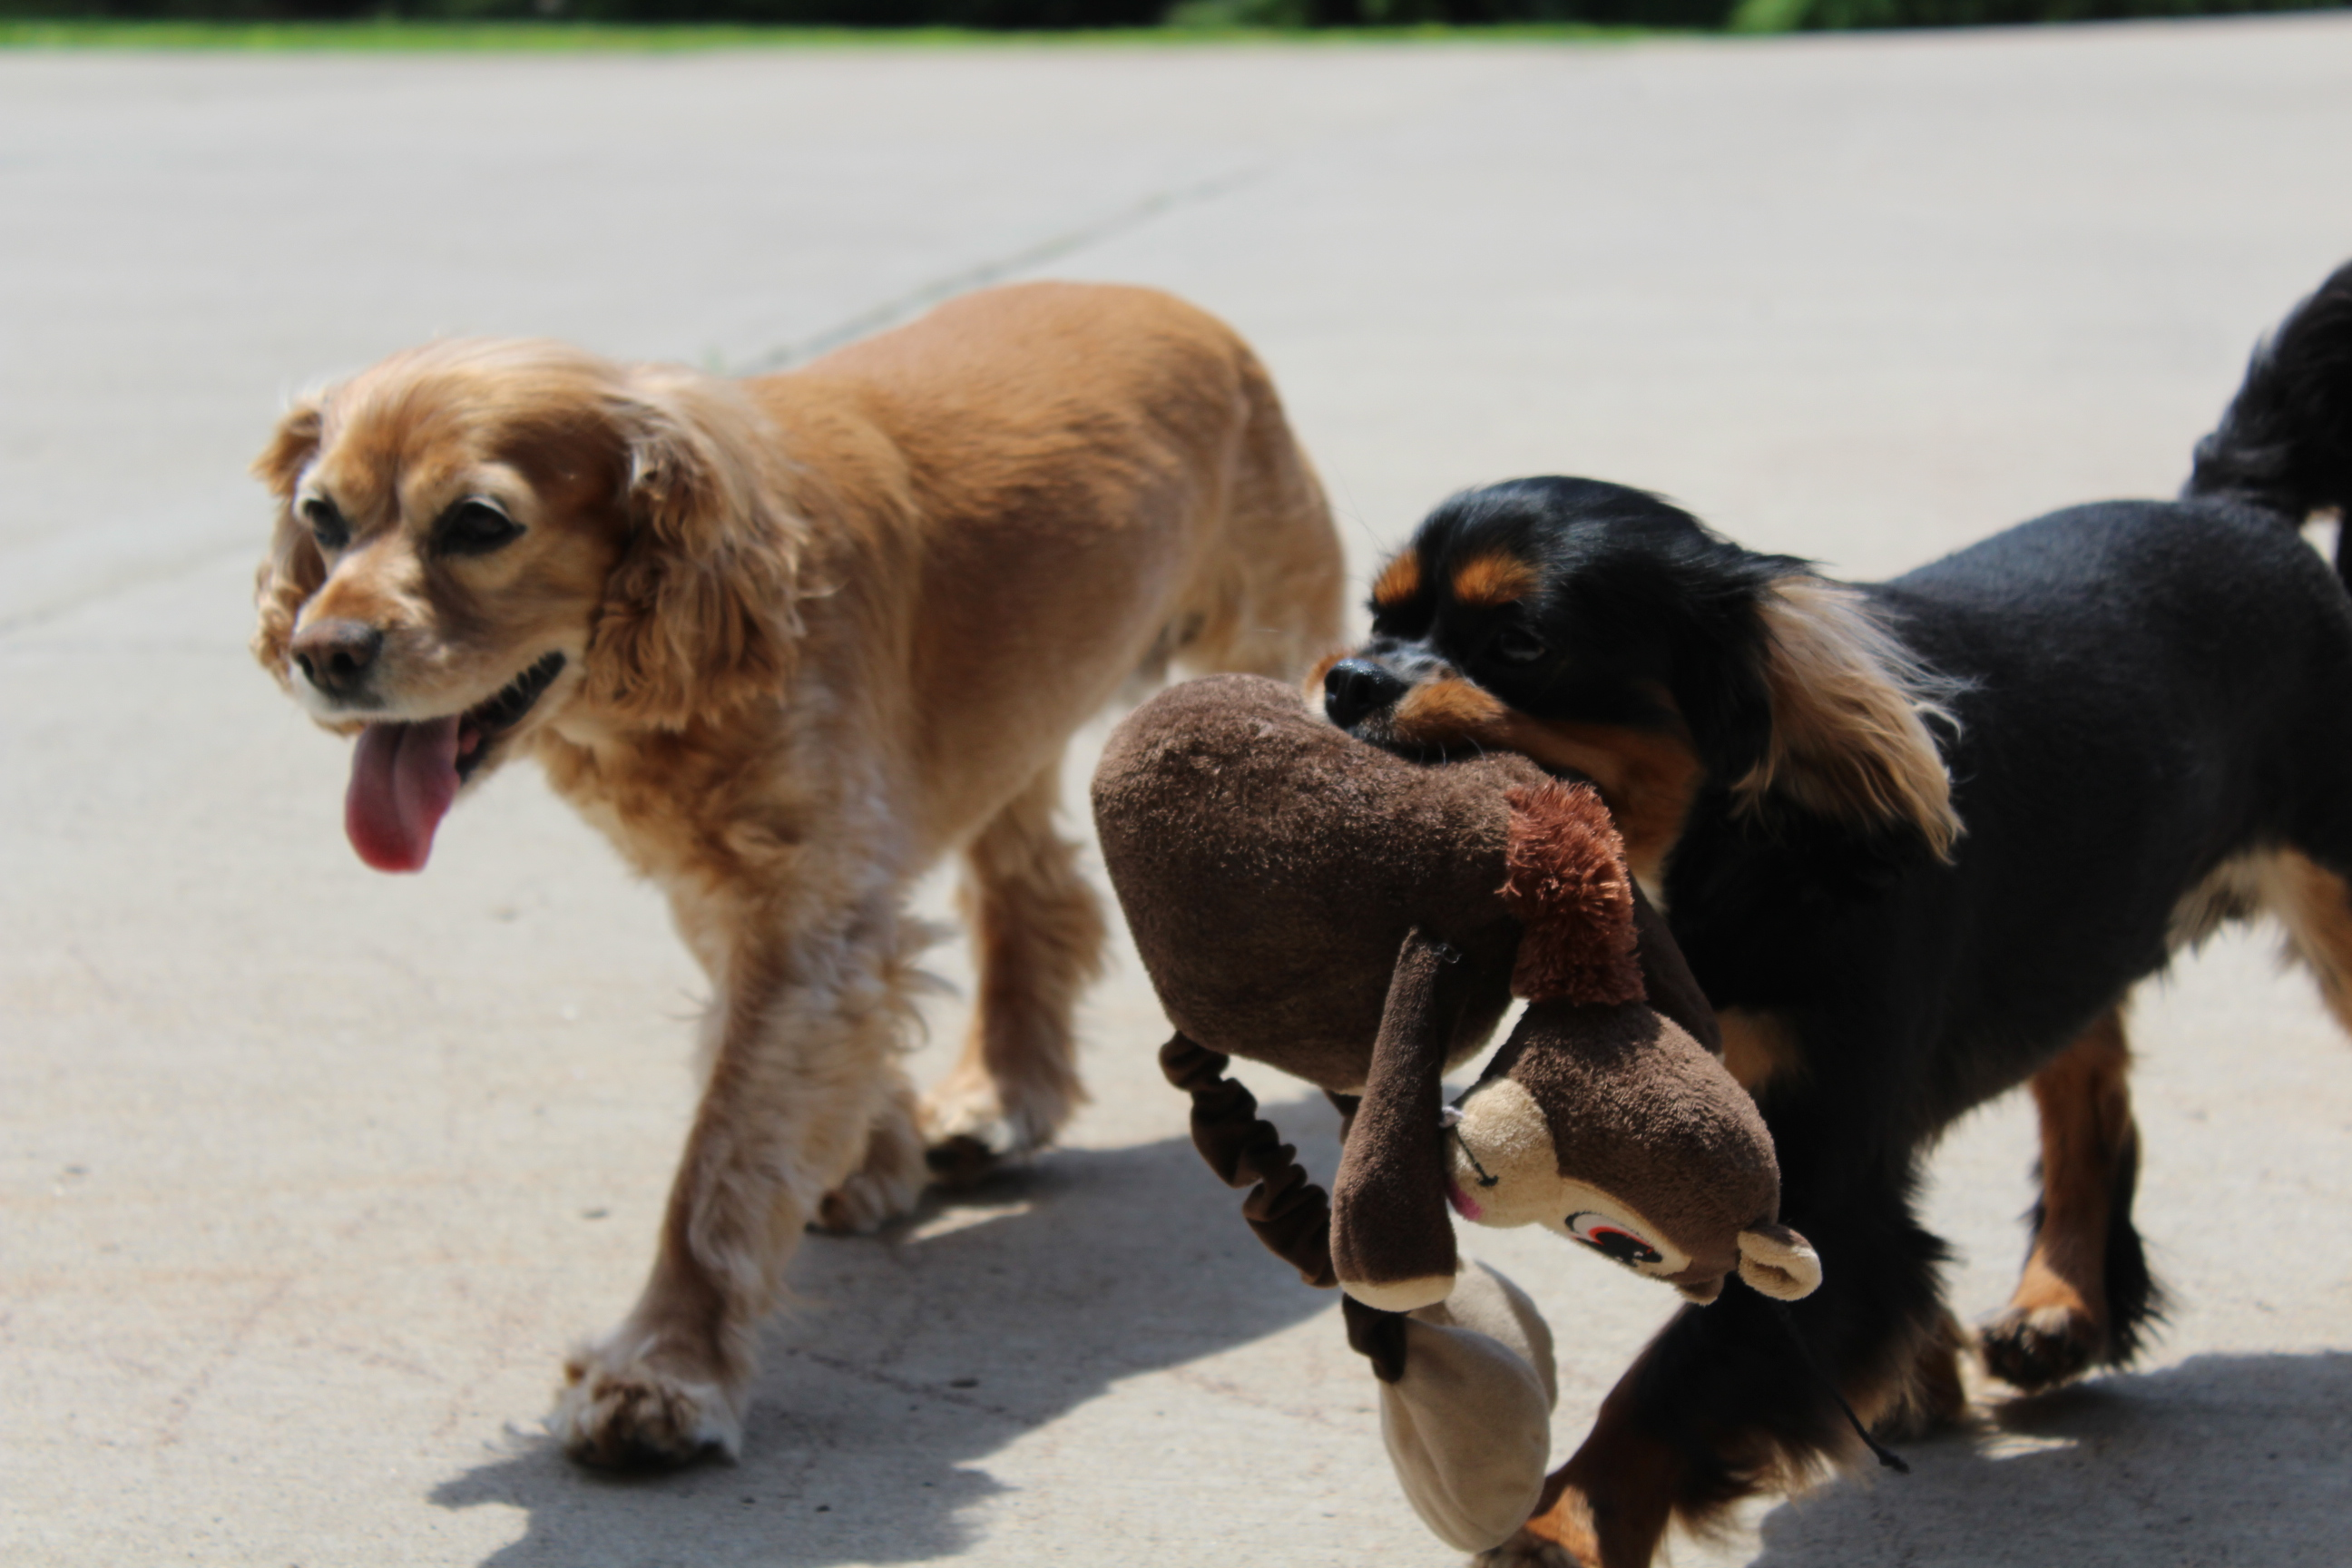 Dogs walking with toy